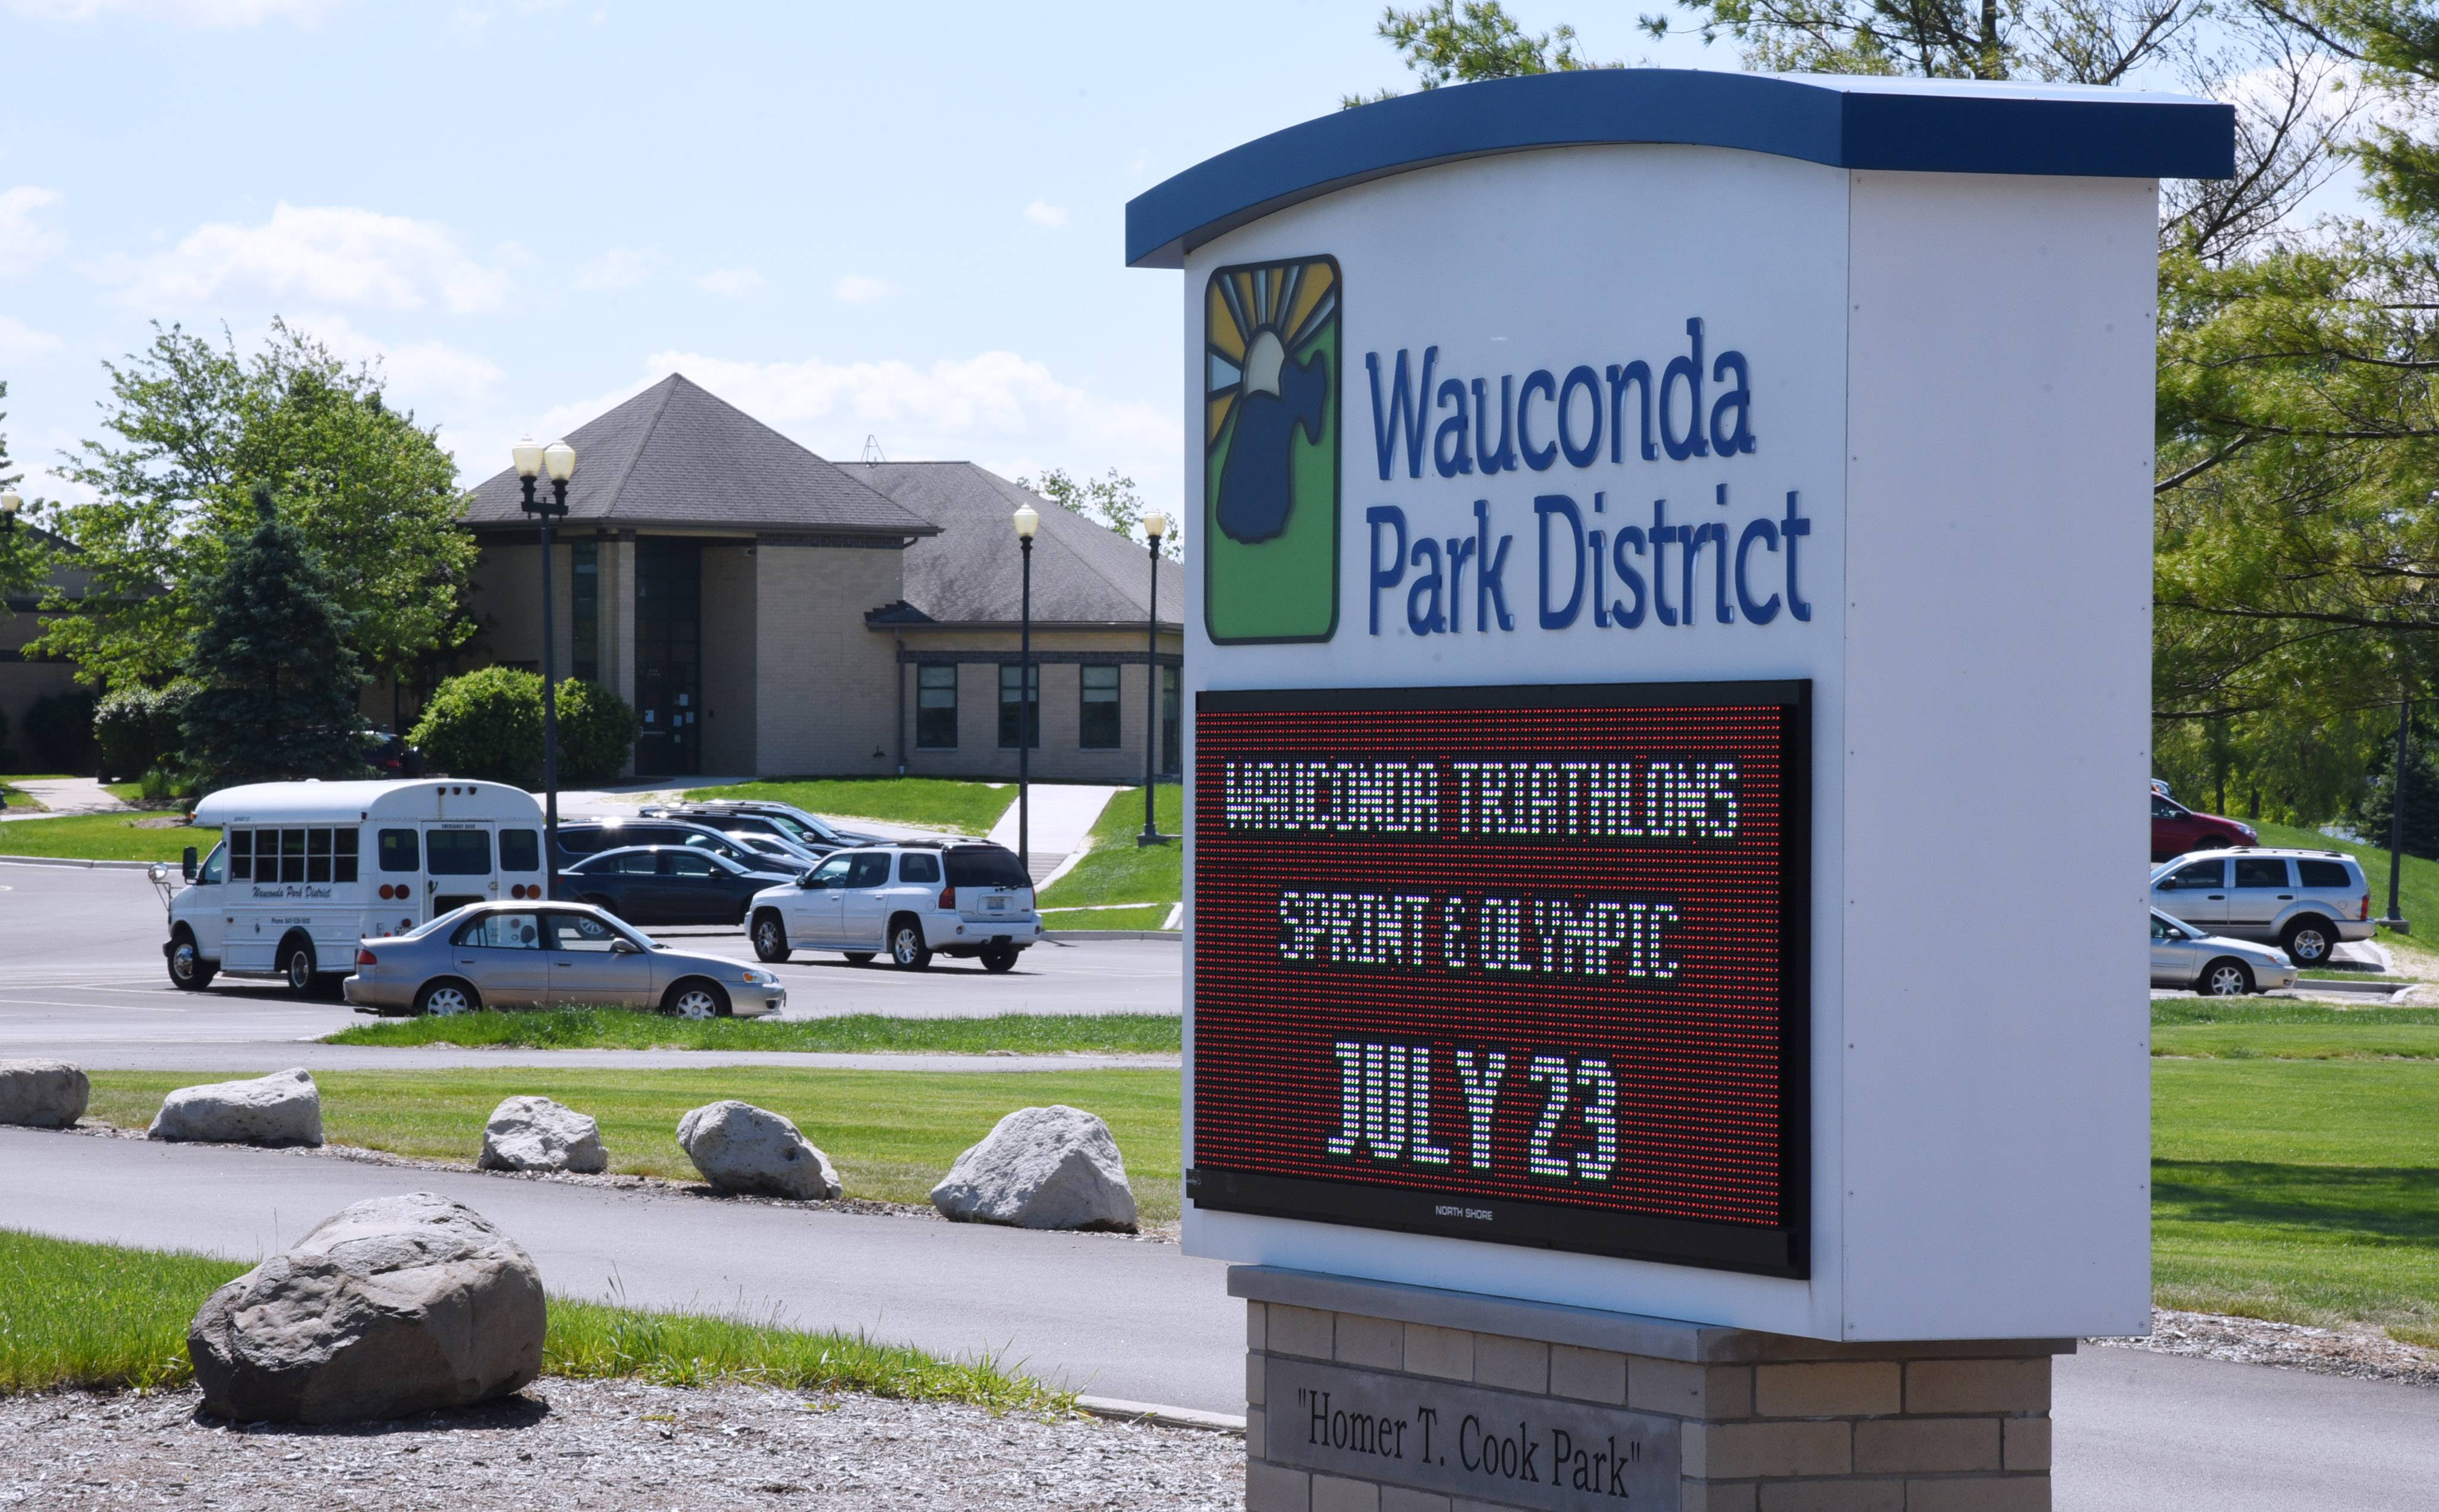 Wauconda's inaugural Down Hill Car Challenge was set for Saturday, but it's been postponed until September because a lack of participants. Wauconda Park District officials say they will use the three extra months to line up more racers.